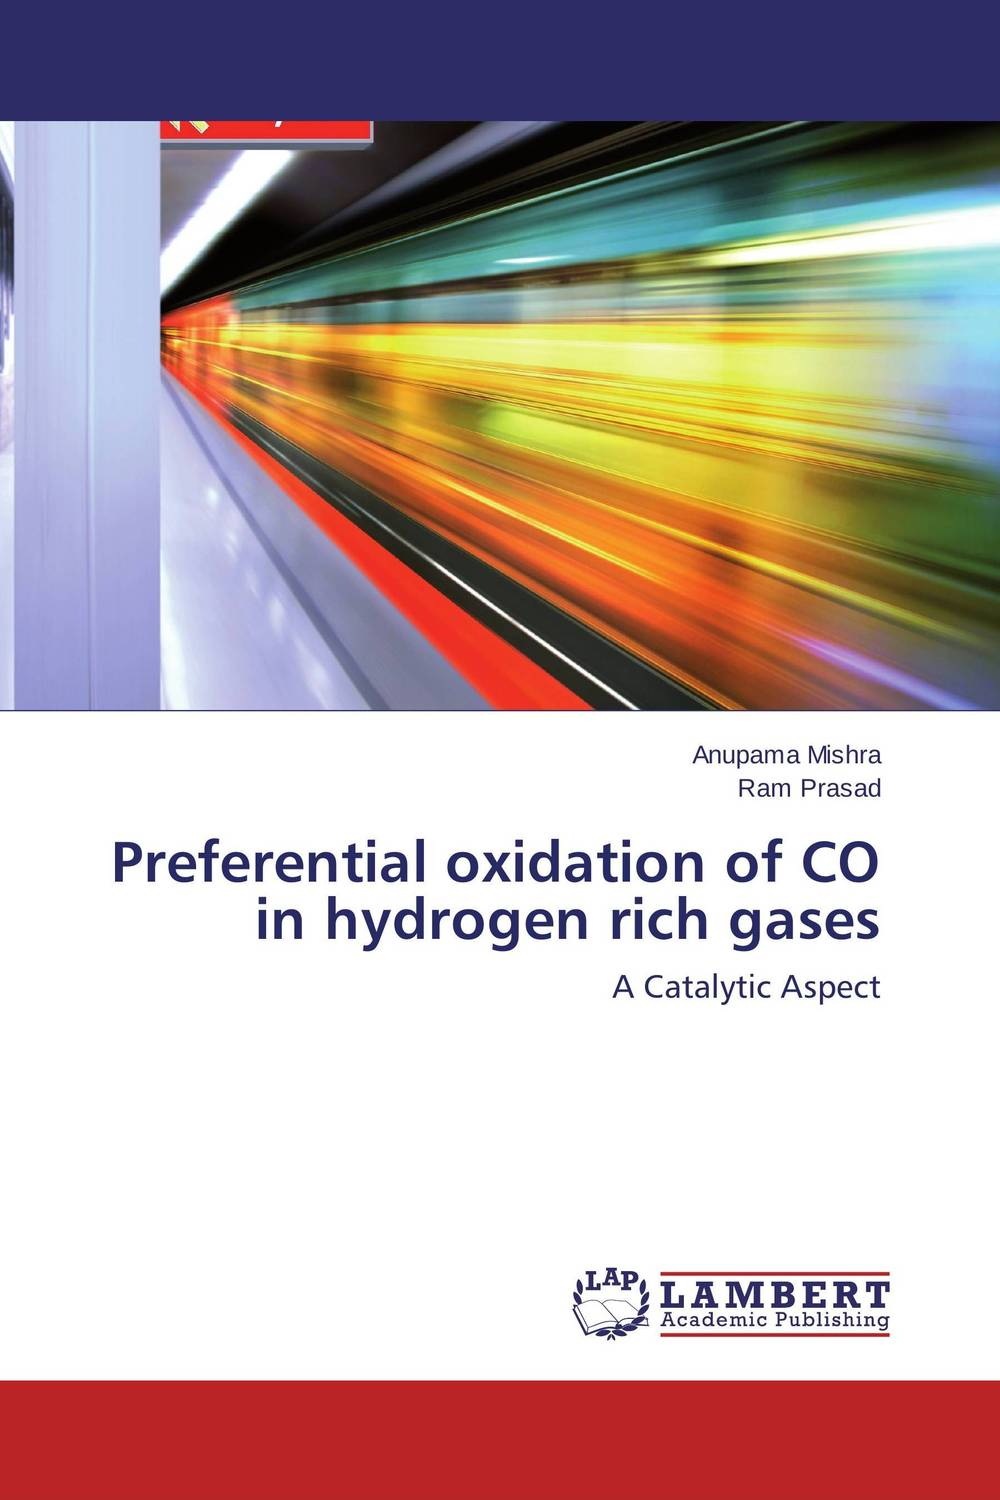 Preferential oxidation of CO in hydrogen rich gases